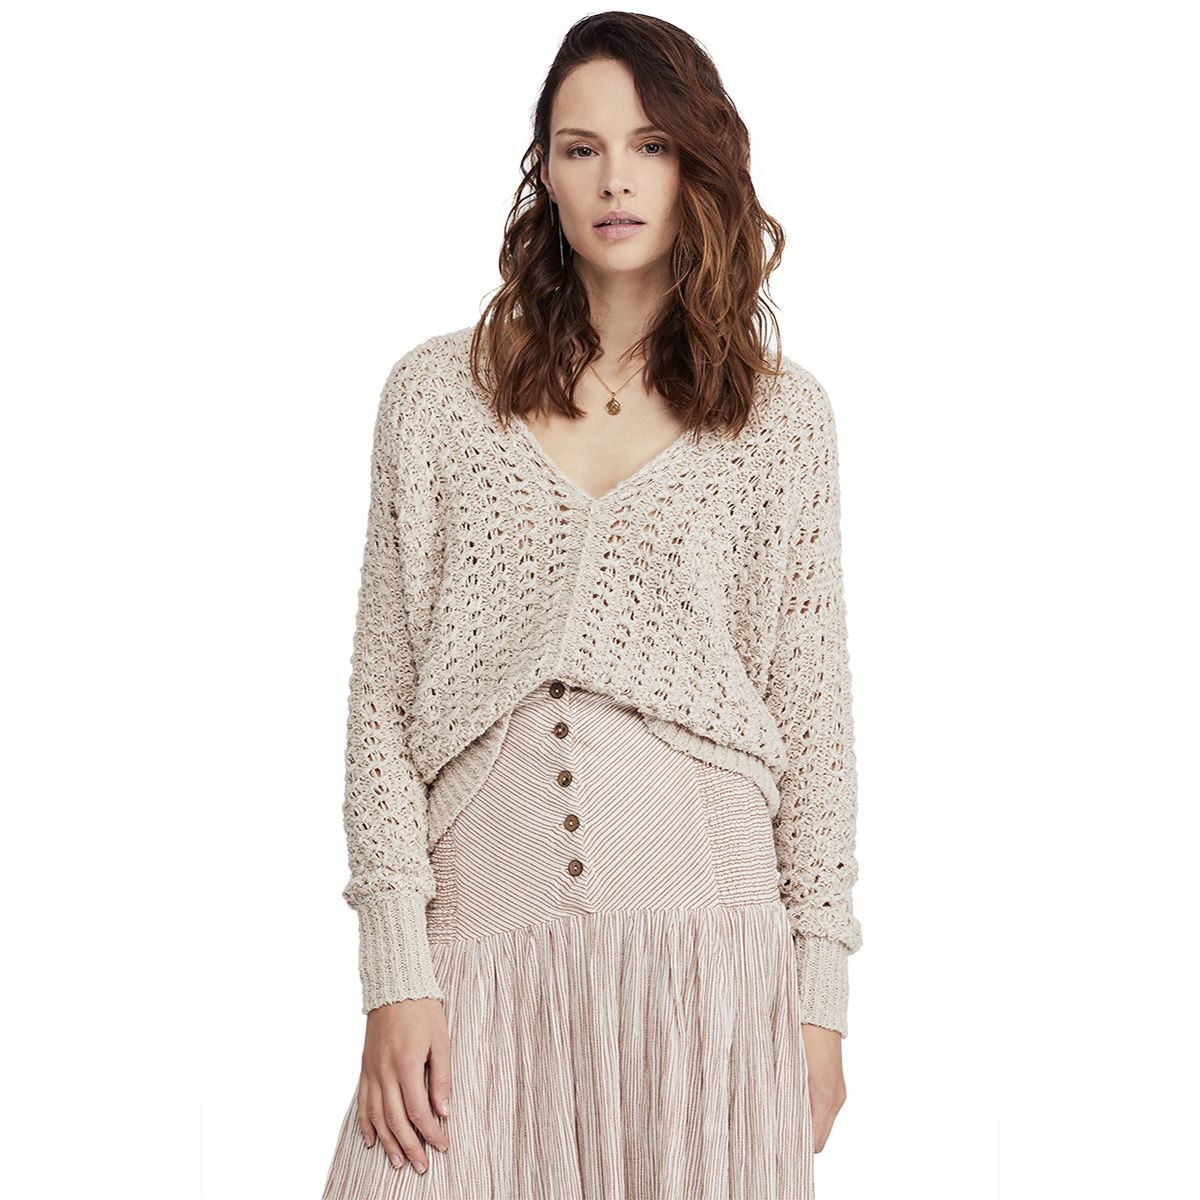 efce284e949 Free People Clothing - Womens Apparel - Macy s